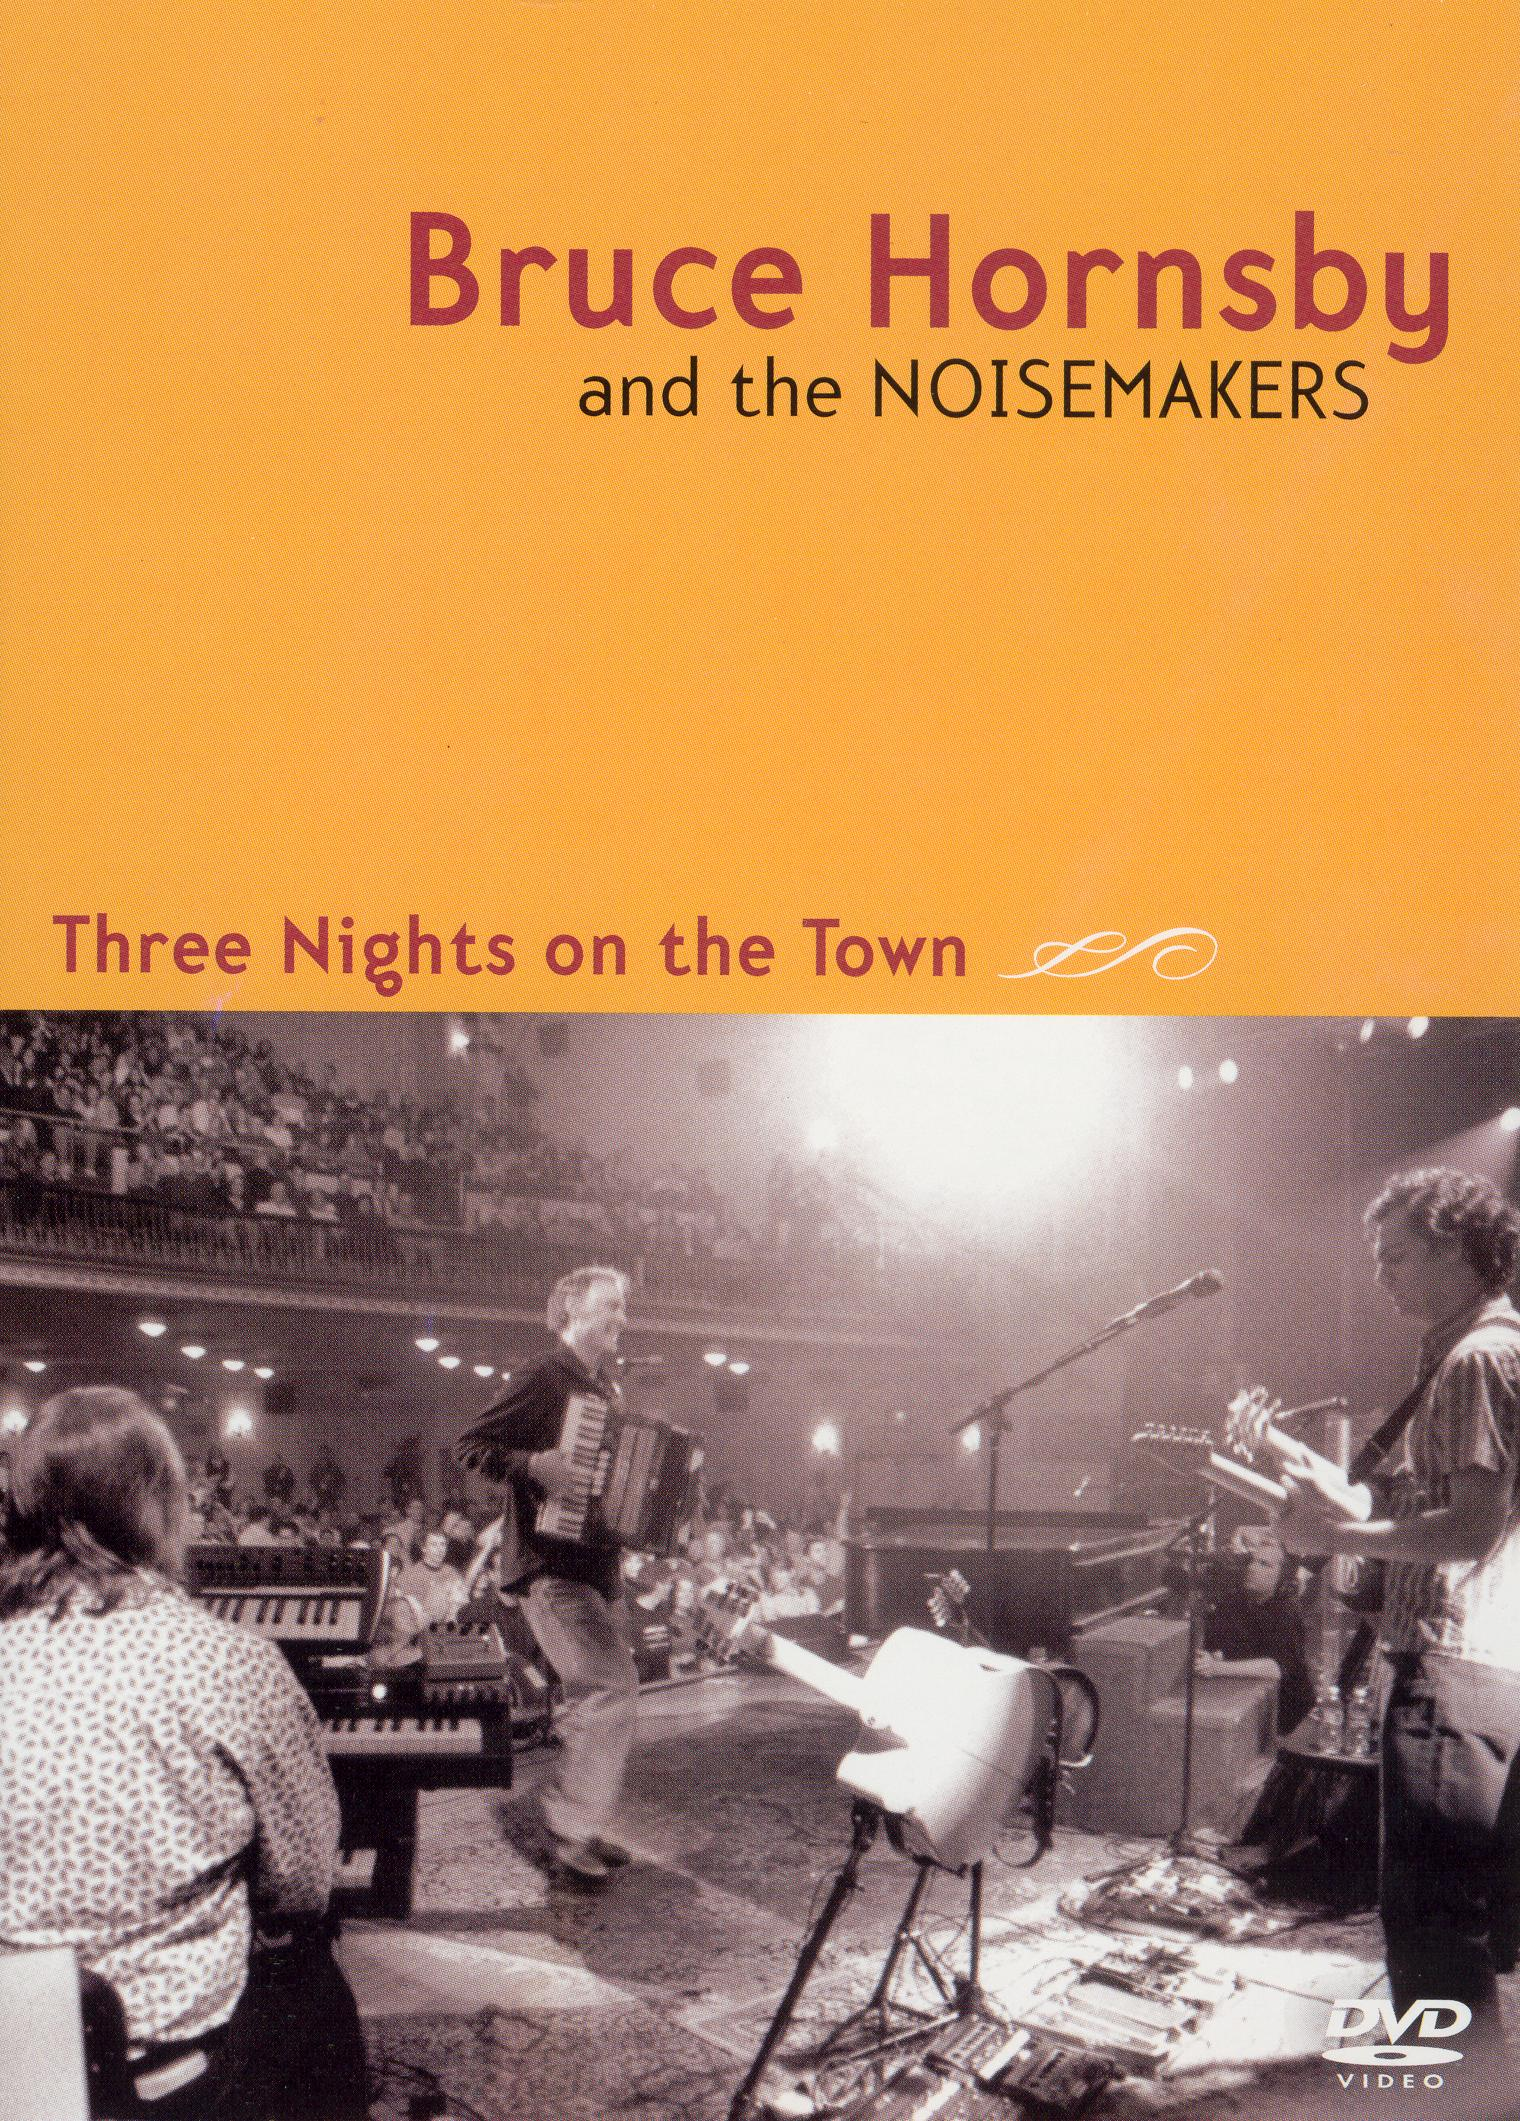 Bruce Hornsby and the Noisemakers: Three Nights on the Town